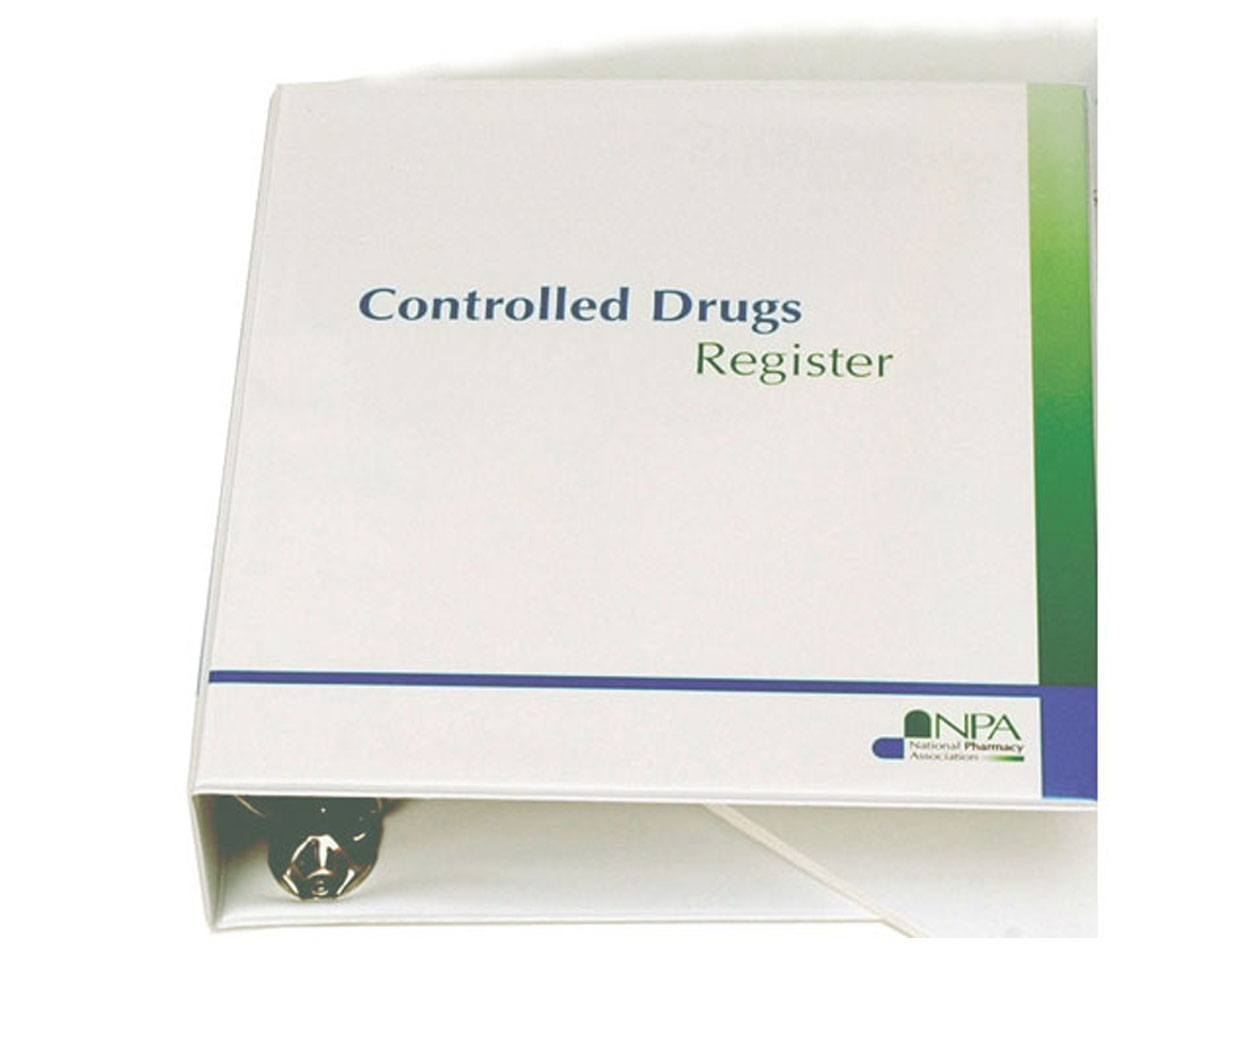 GREAT VALUE - NPA Binder for Controlled Drugs Register